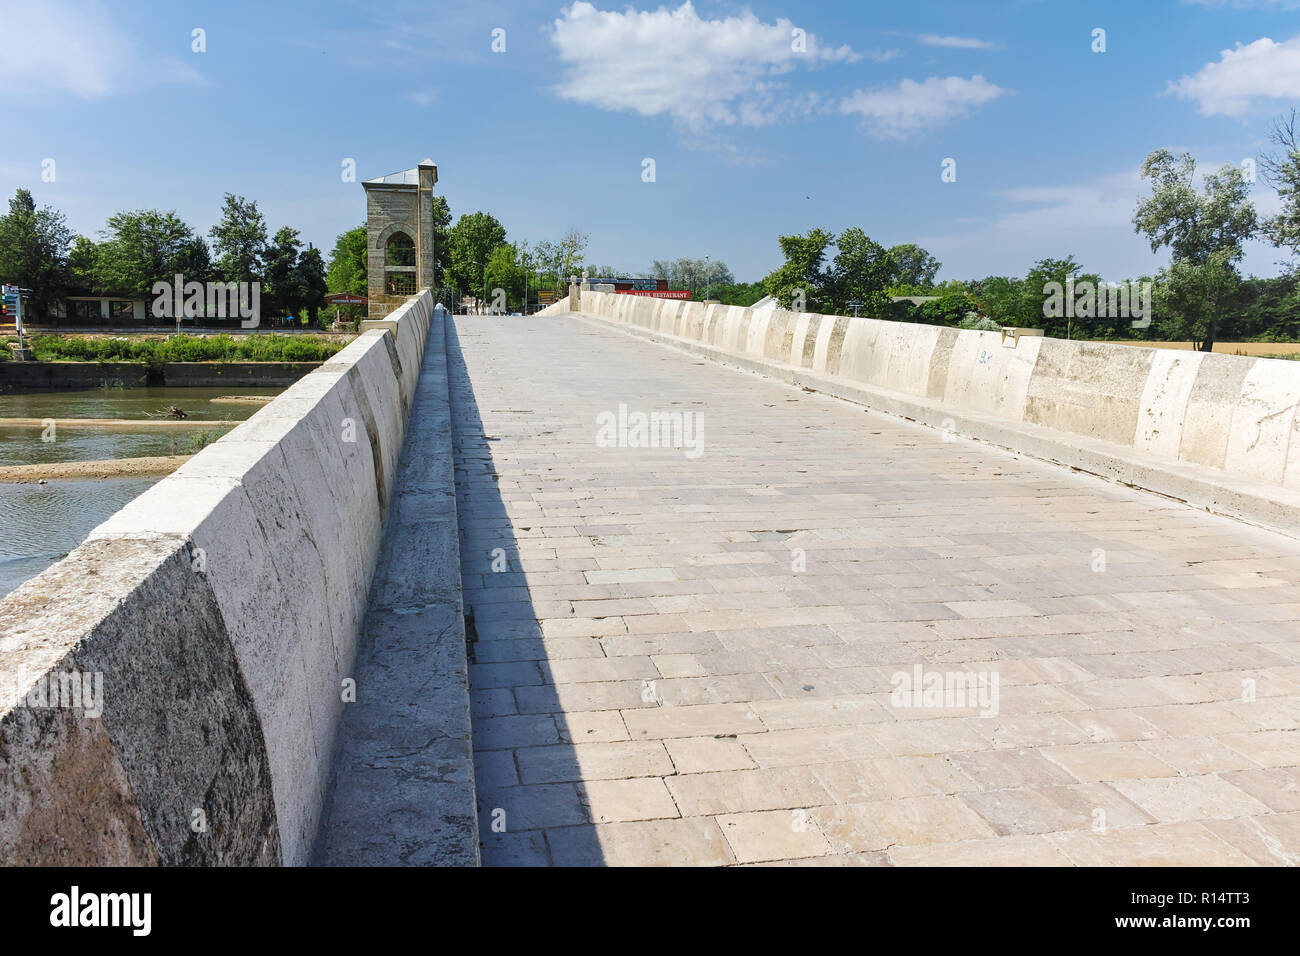 EDIRNE, TURKEY - MAY 26, 2018: Bridge from period of Ottoman Empire over Tunca River in city of Edirne,  East Thrace, Turkey - Stock Image